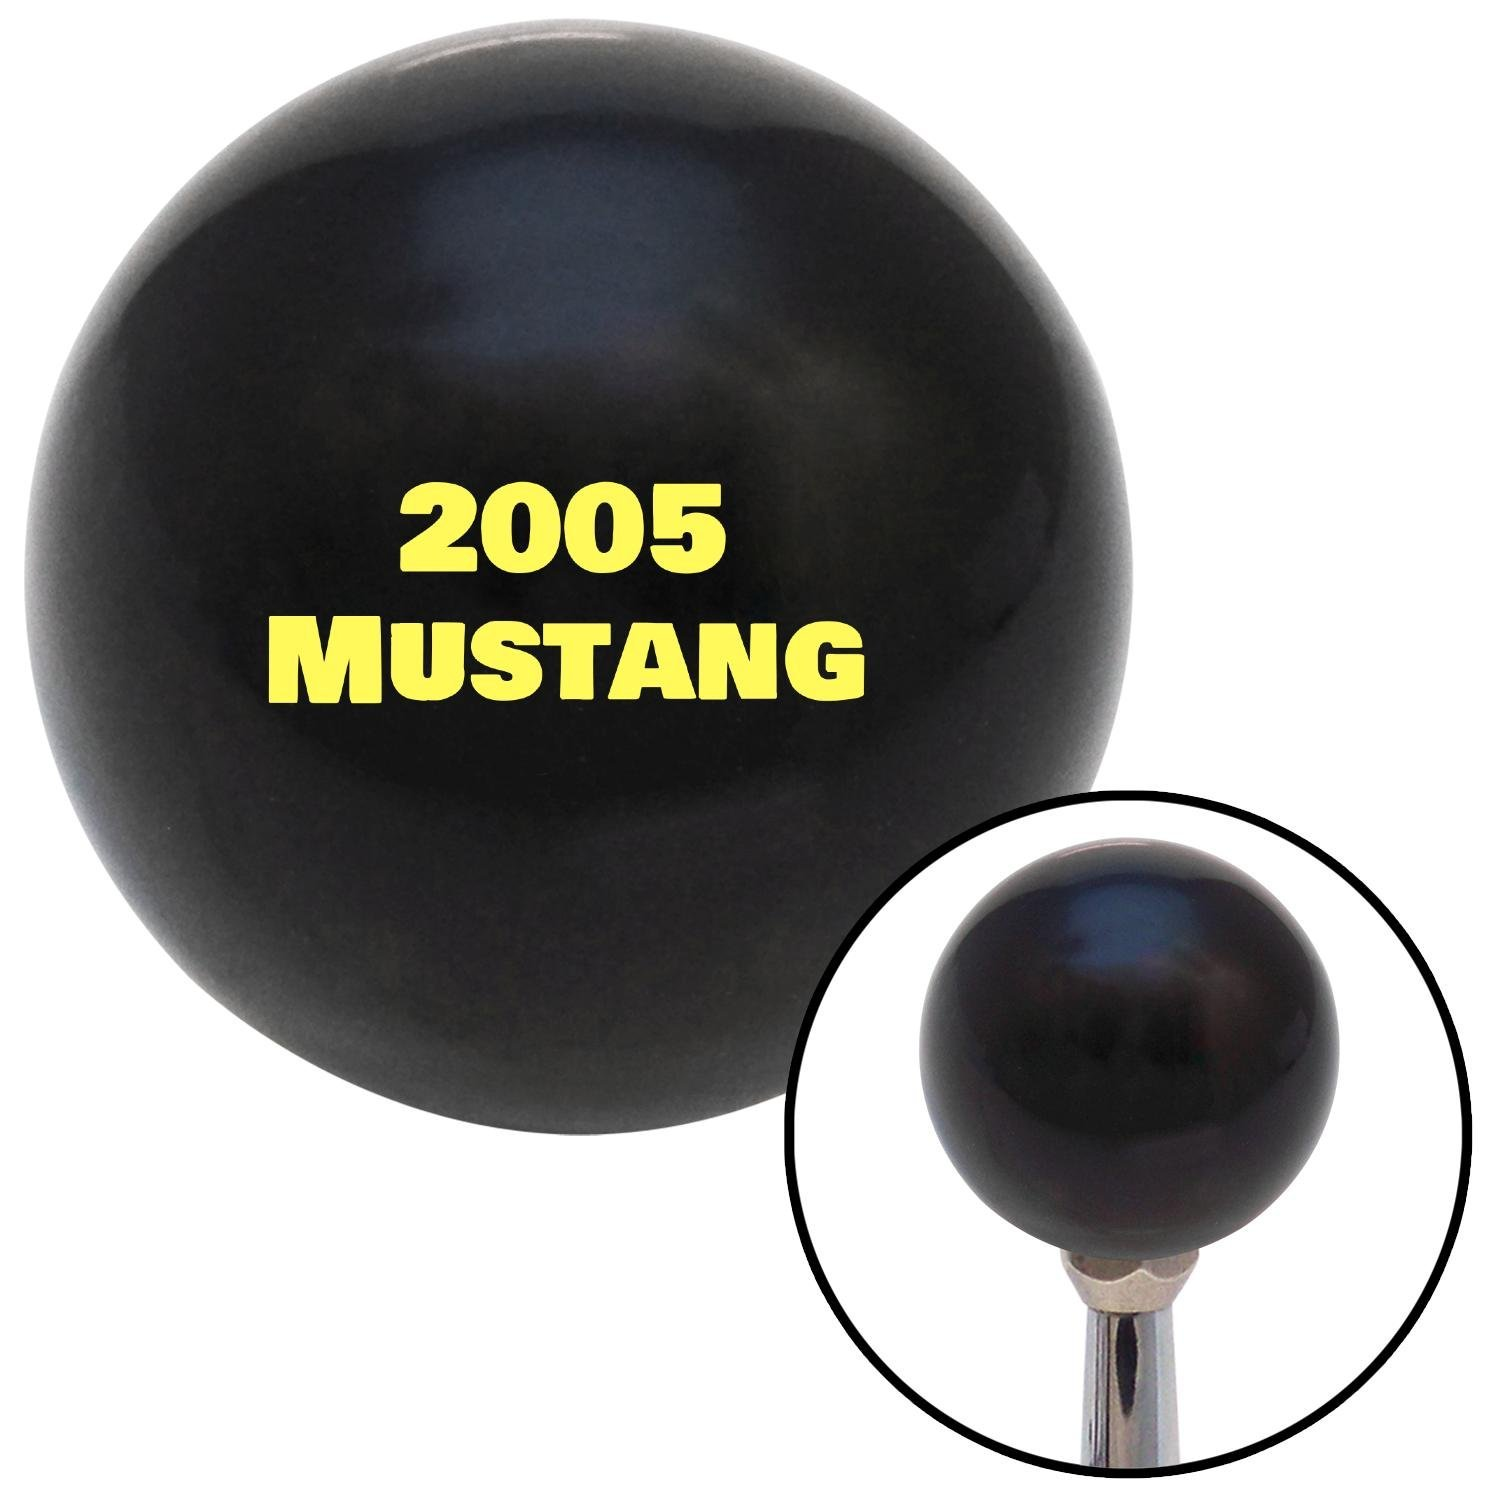 American Shifter 140622 Black Shift Knob with M16 x 1.5 Insert Yellow 2005 Mustang